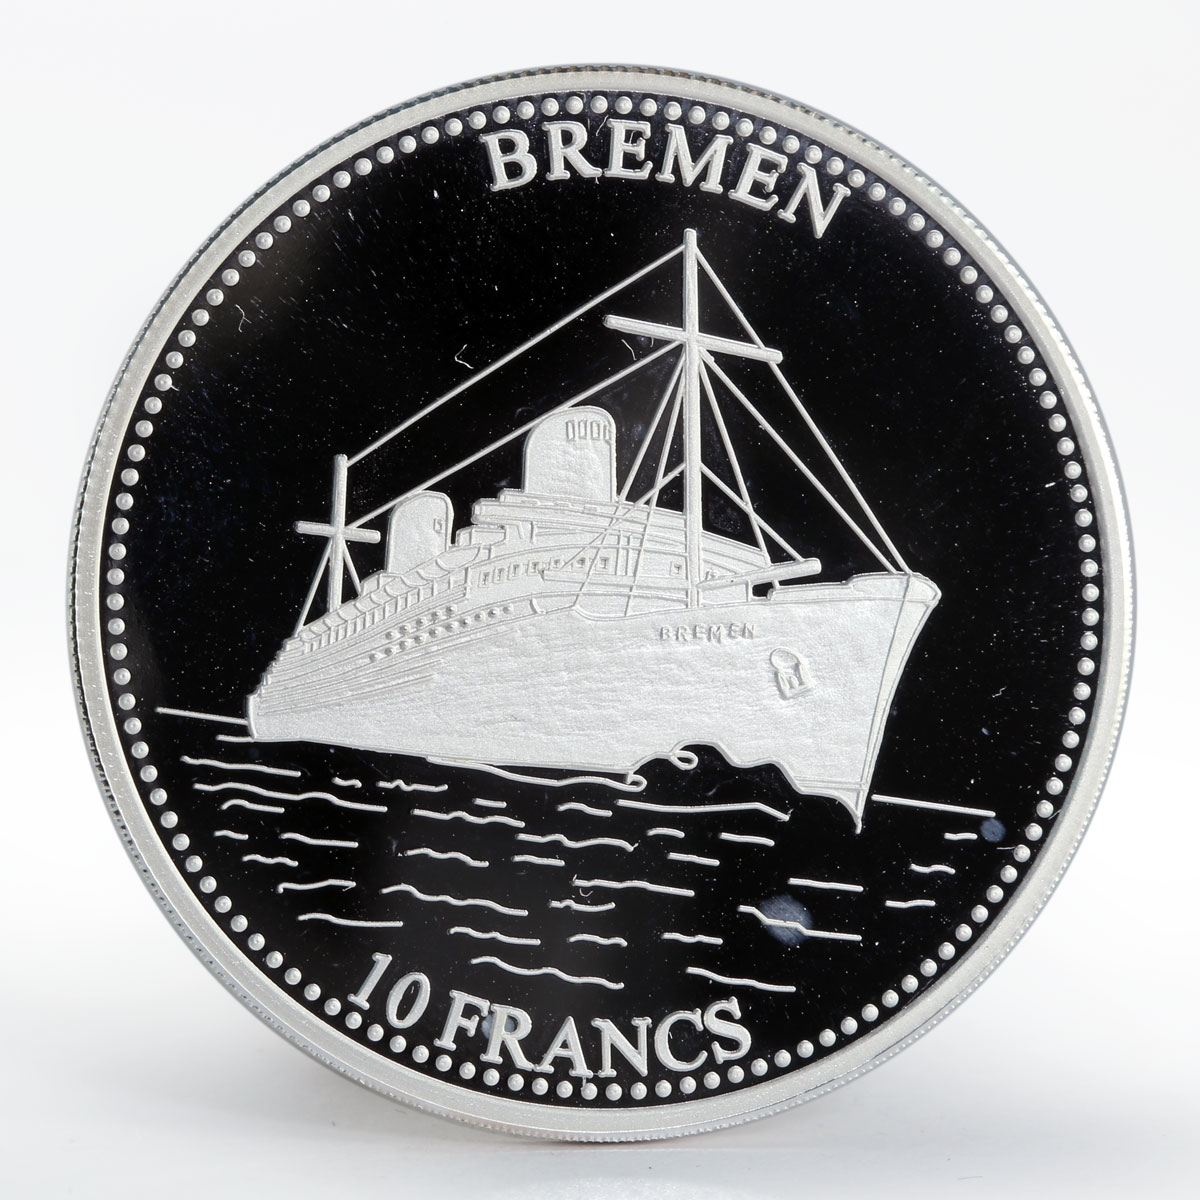 Congo 10 francs Ship Bremen silver proof coin 2001